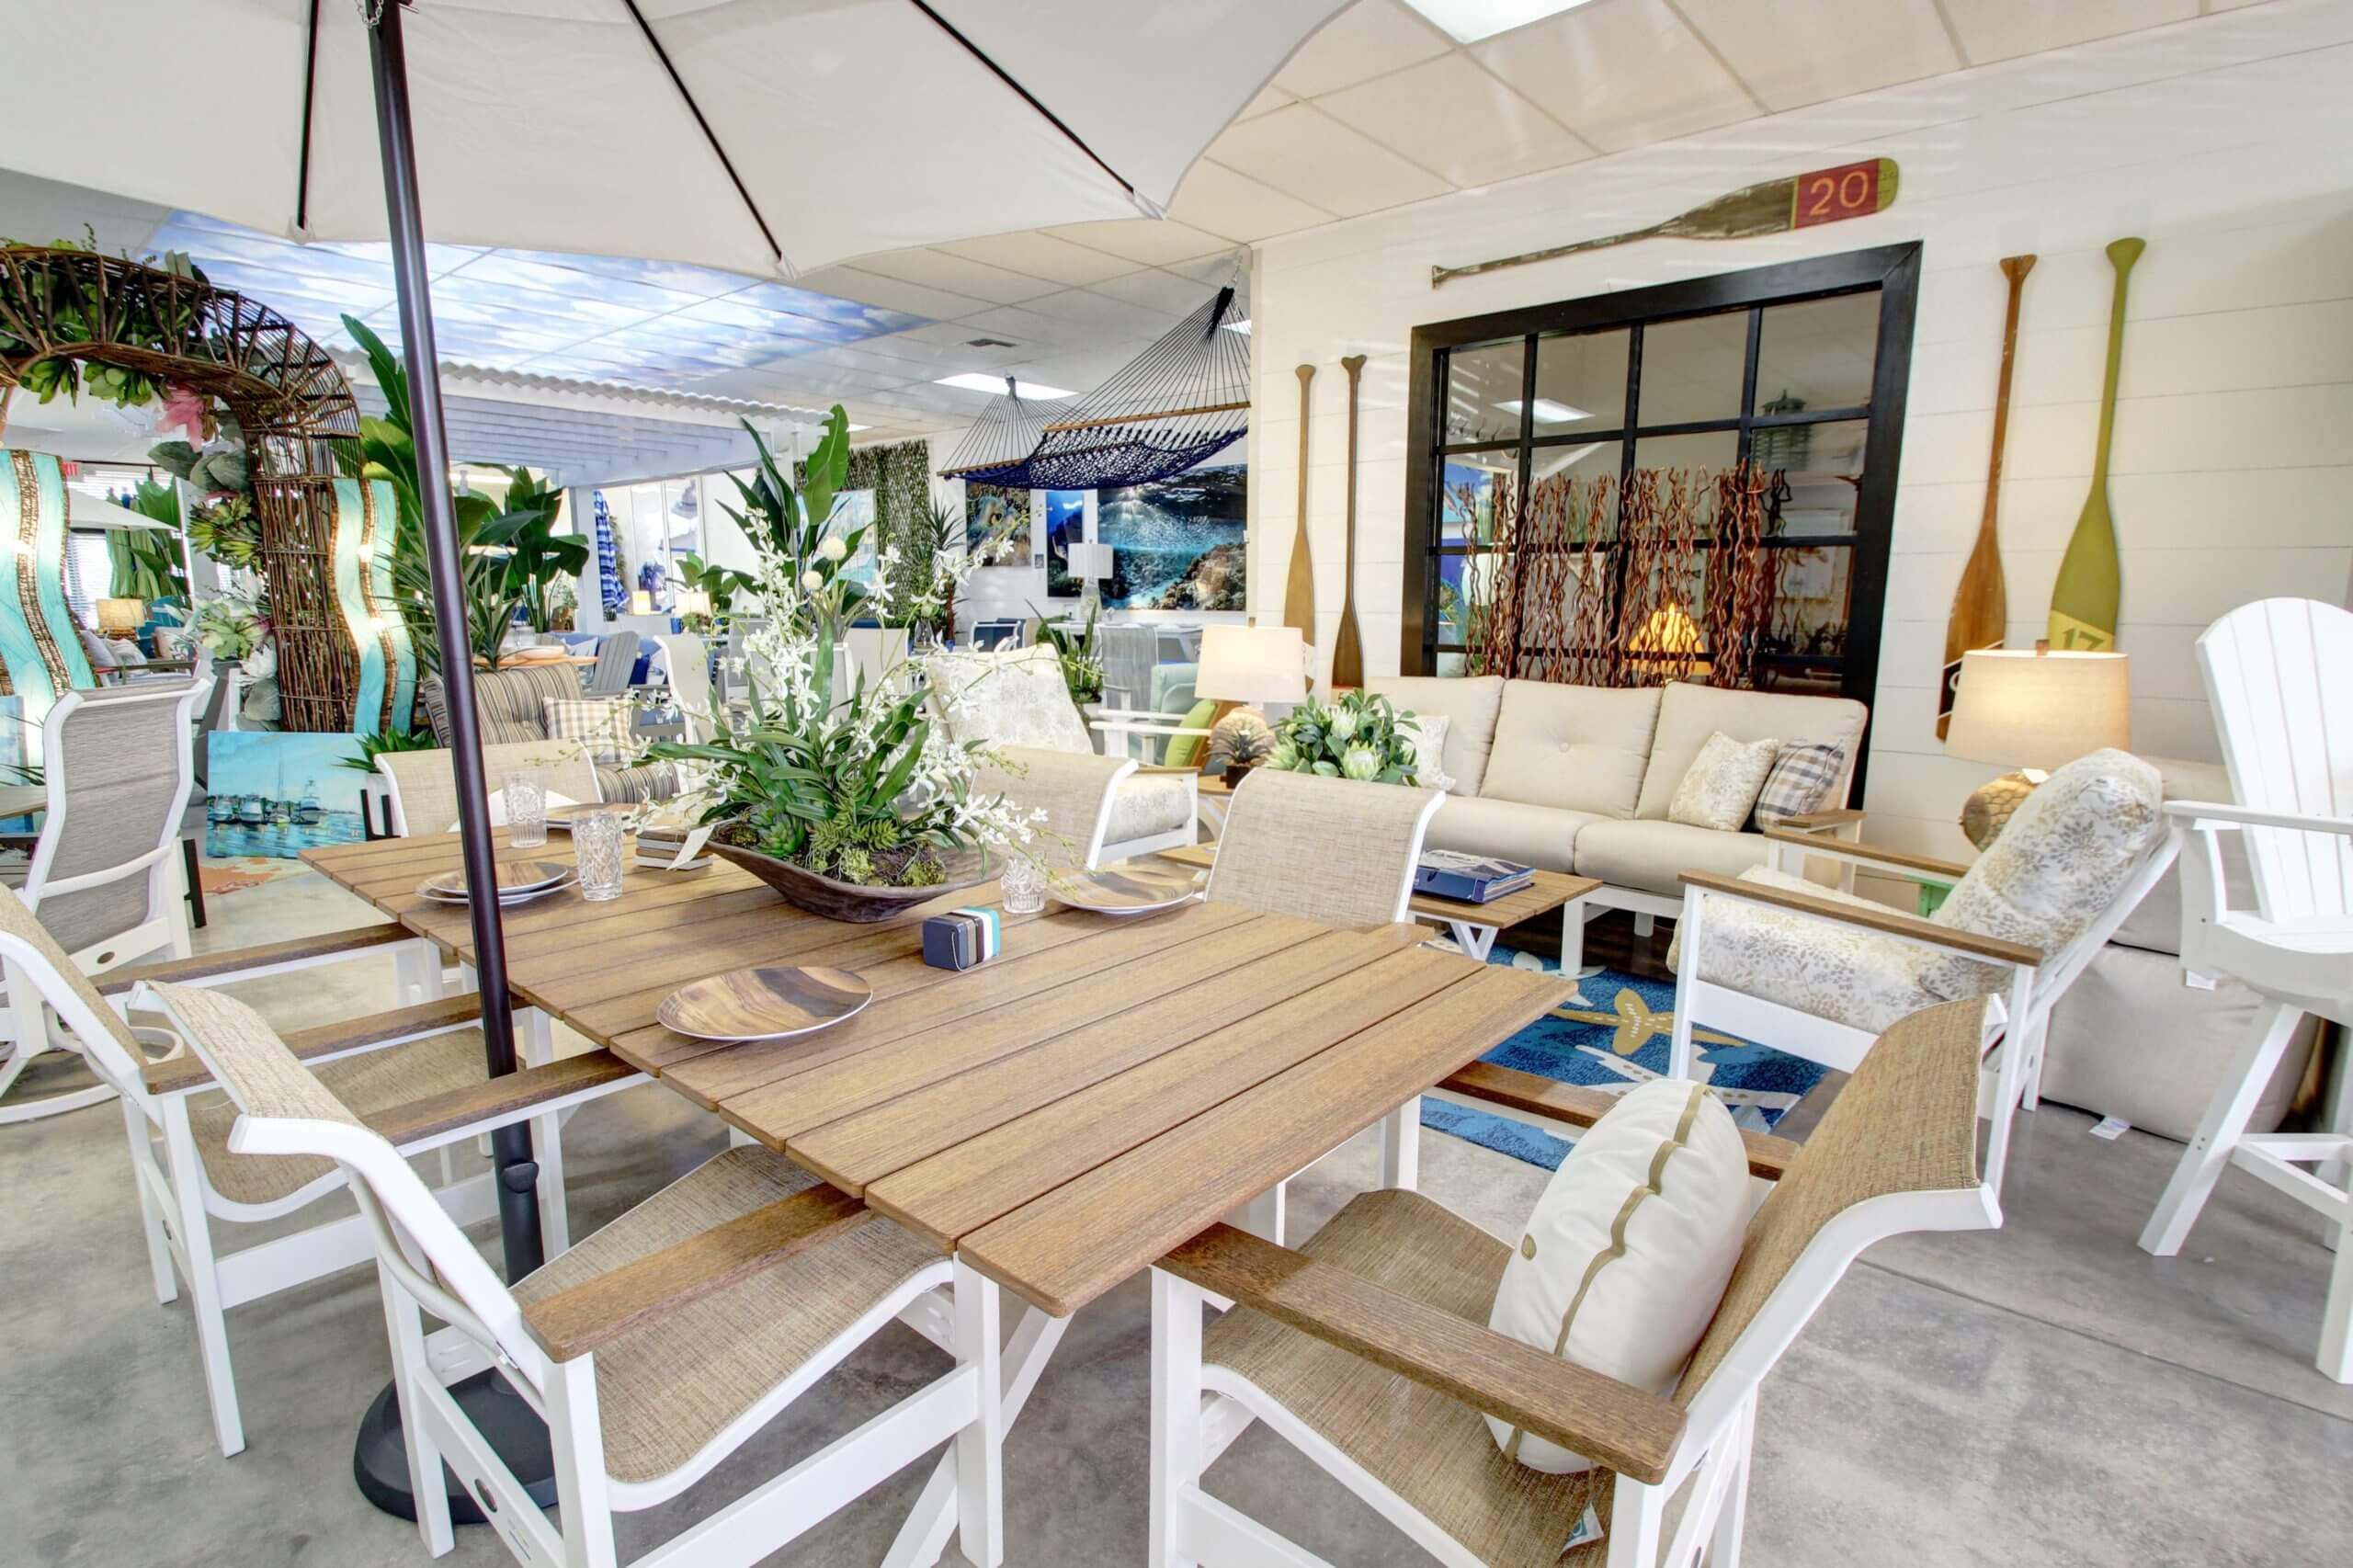 About Us - Casual Living Patio & Poolside on Casual Living Patio id=24280